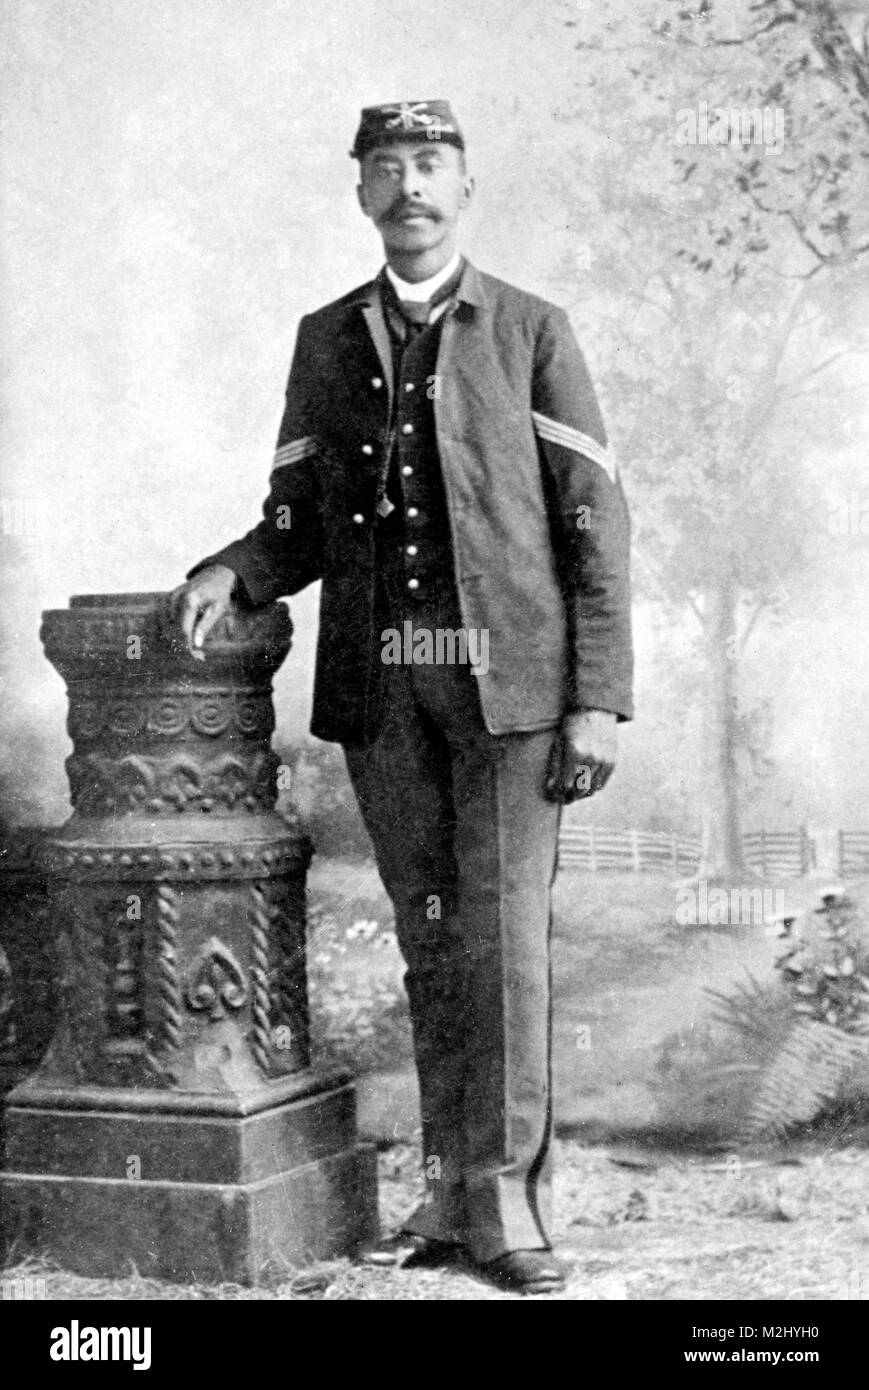 John Denny, Buffalo Soldier, Medal of Honor Recipient - Stock Image